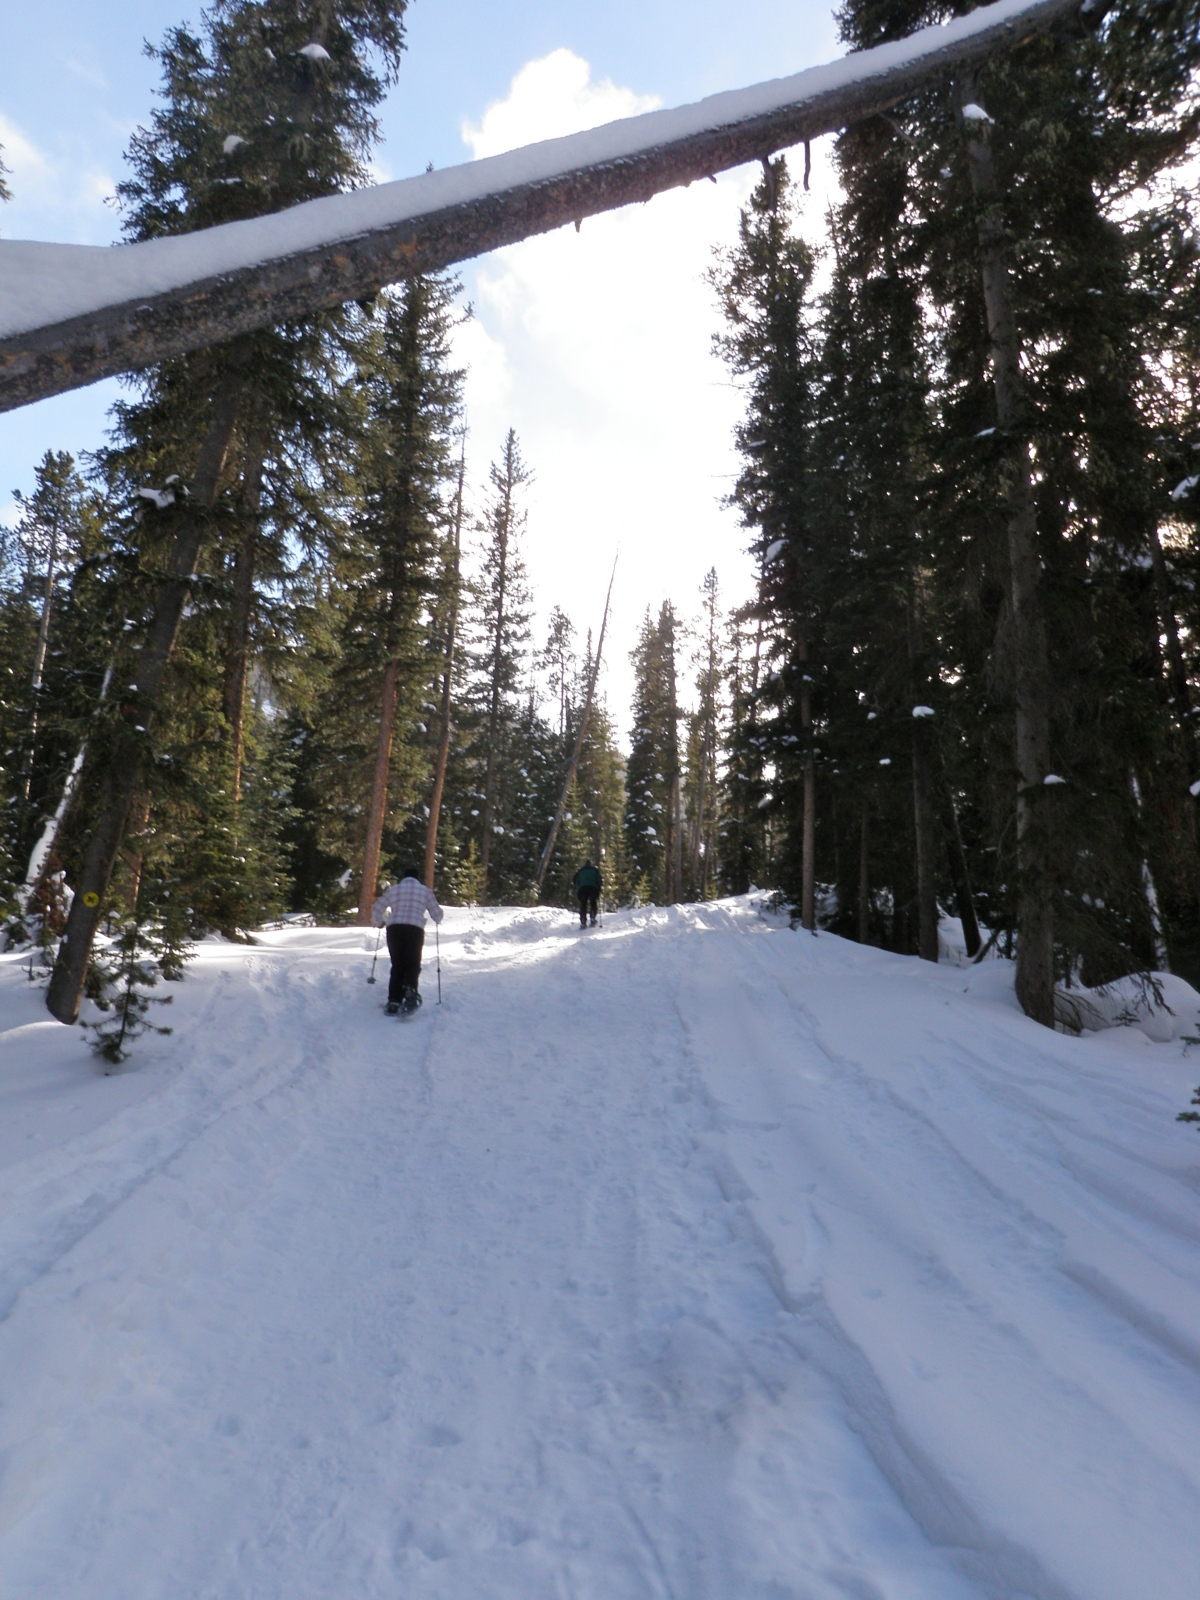 Moose Tracks Trail – Snowshoeing at Big Sky Resort, MT